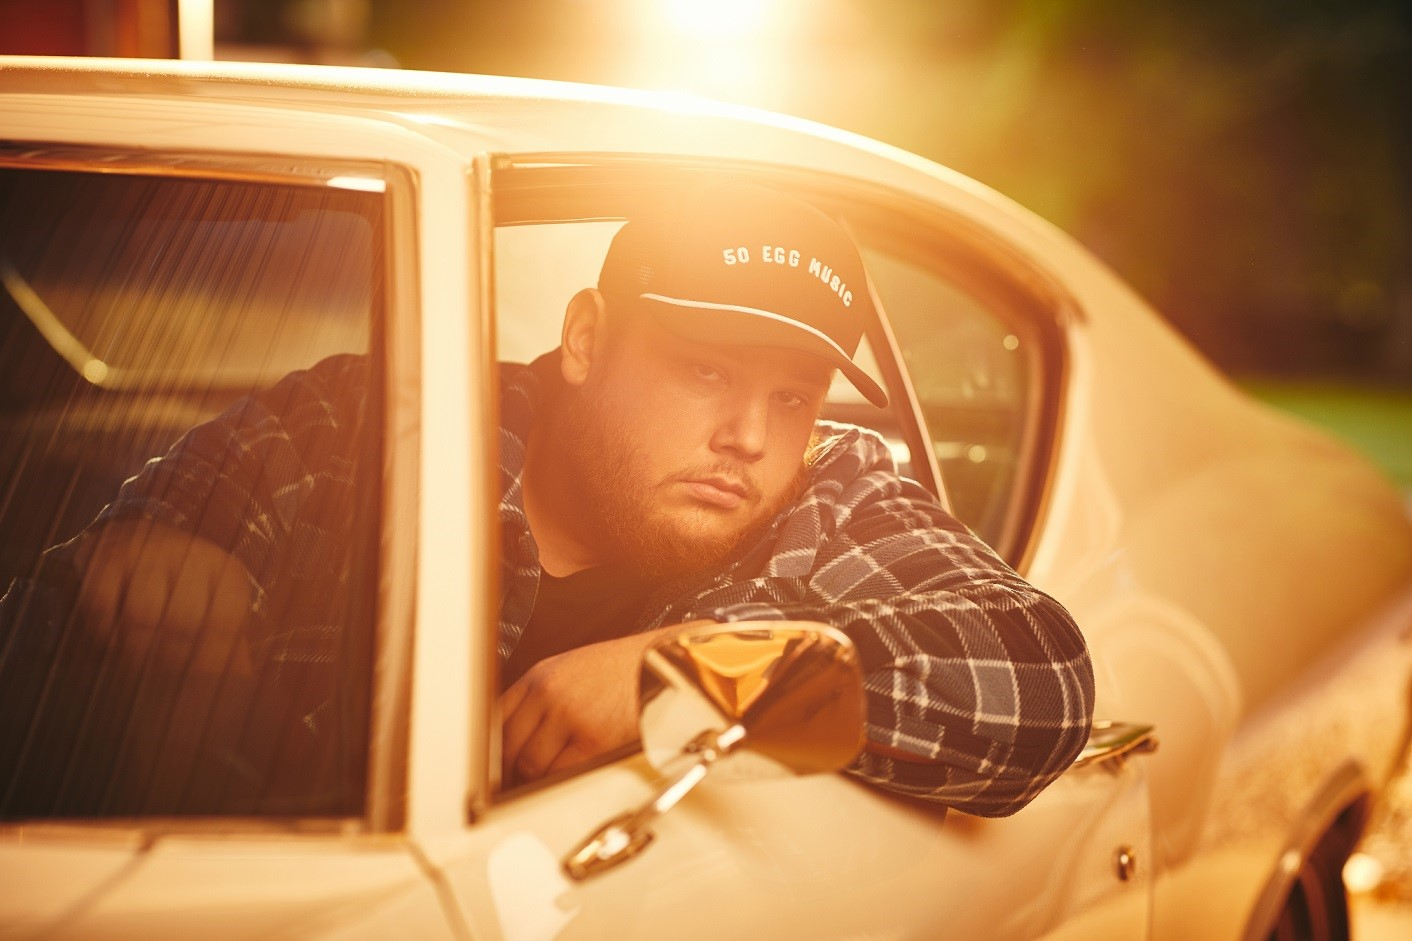 LUKE COMBS' HIGHLY-ANTICIPATED NEW ALBUM OUT NOVEMBER 8